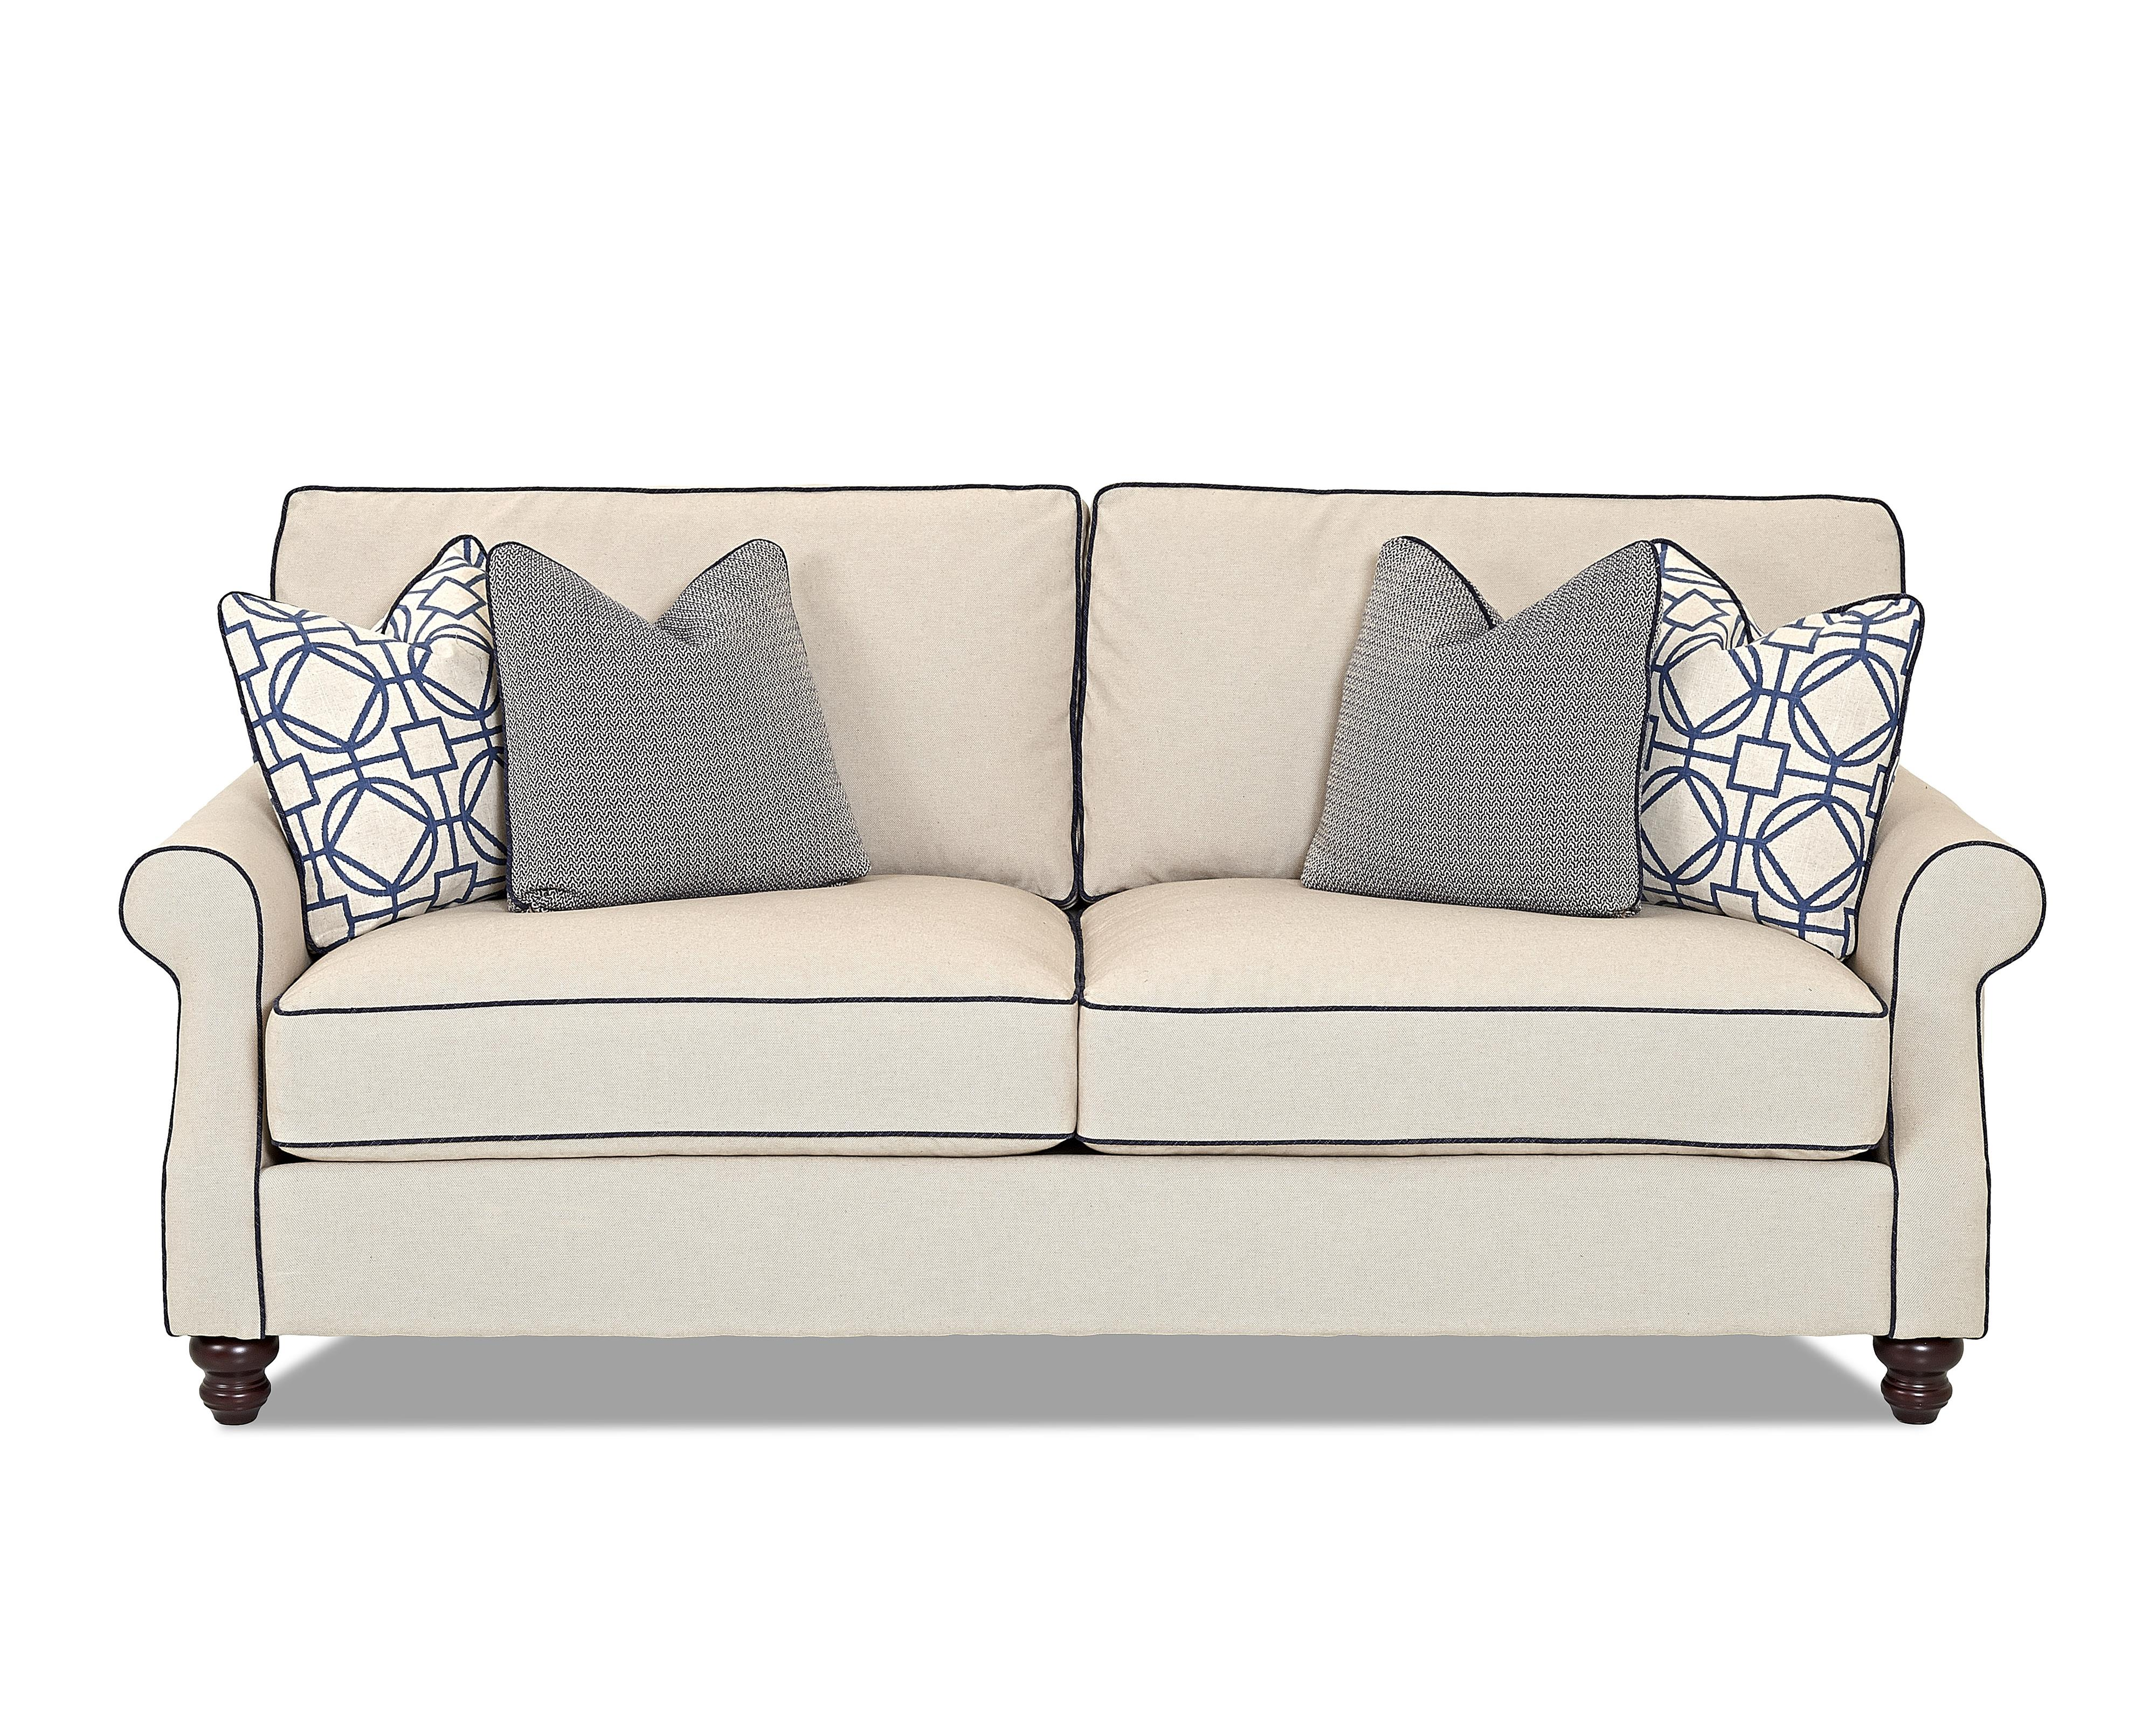 Tifton Sofa by Klaussner at Northeast Factory Direct